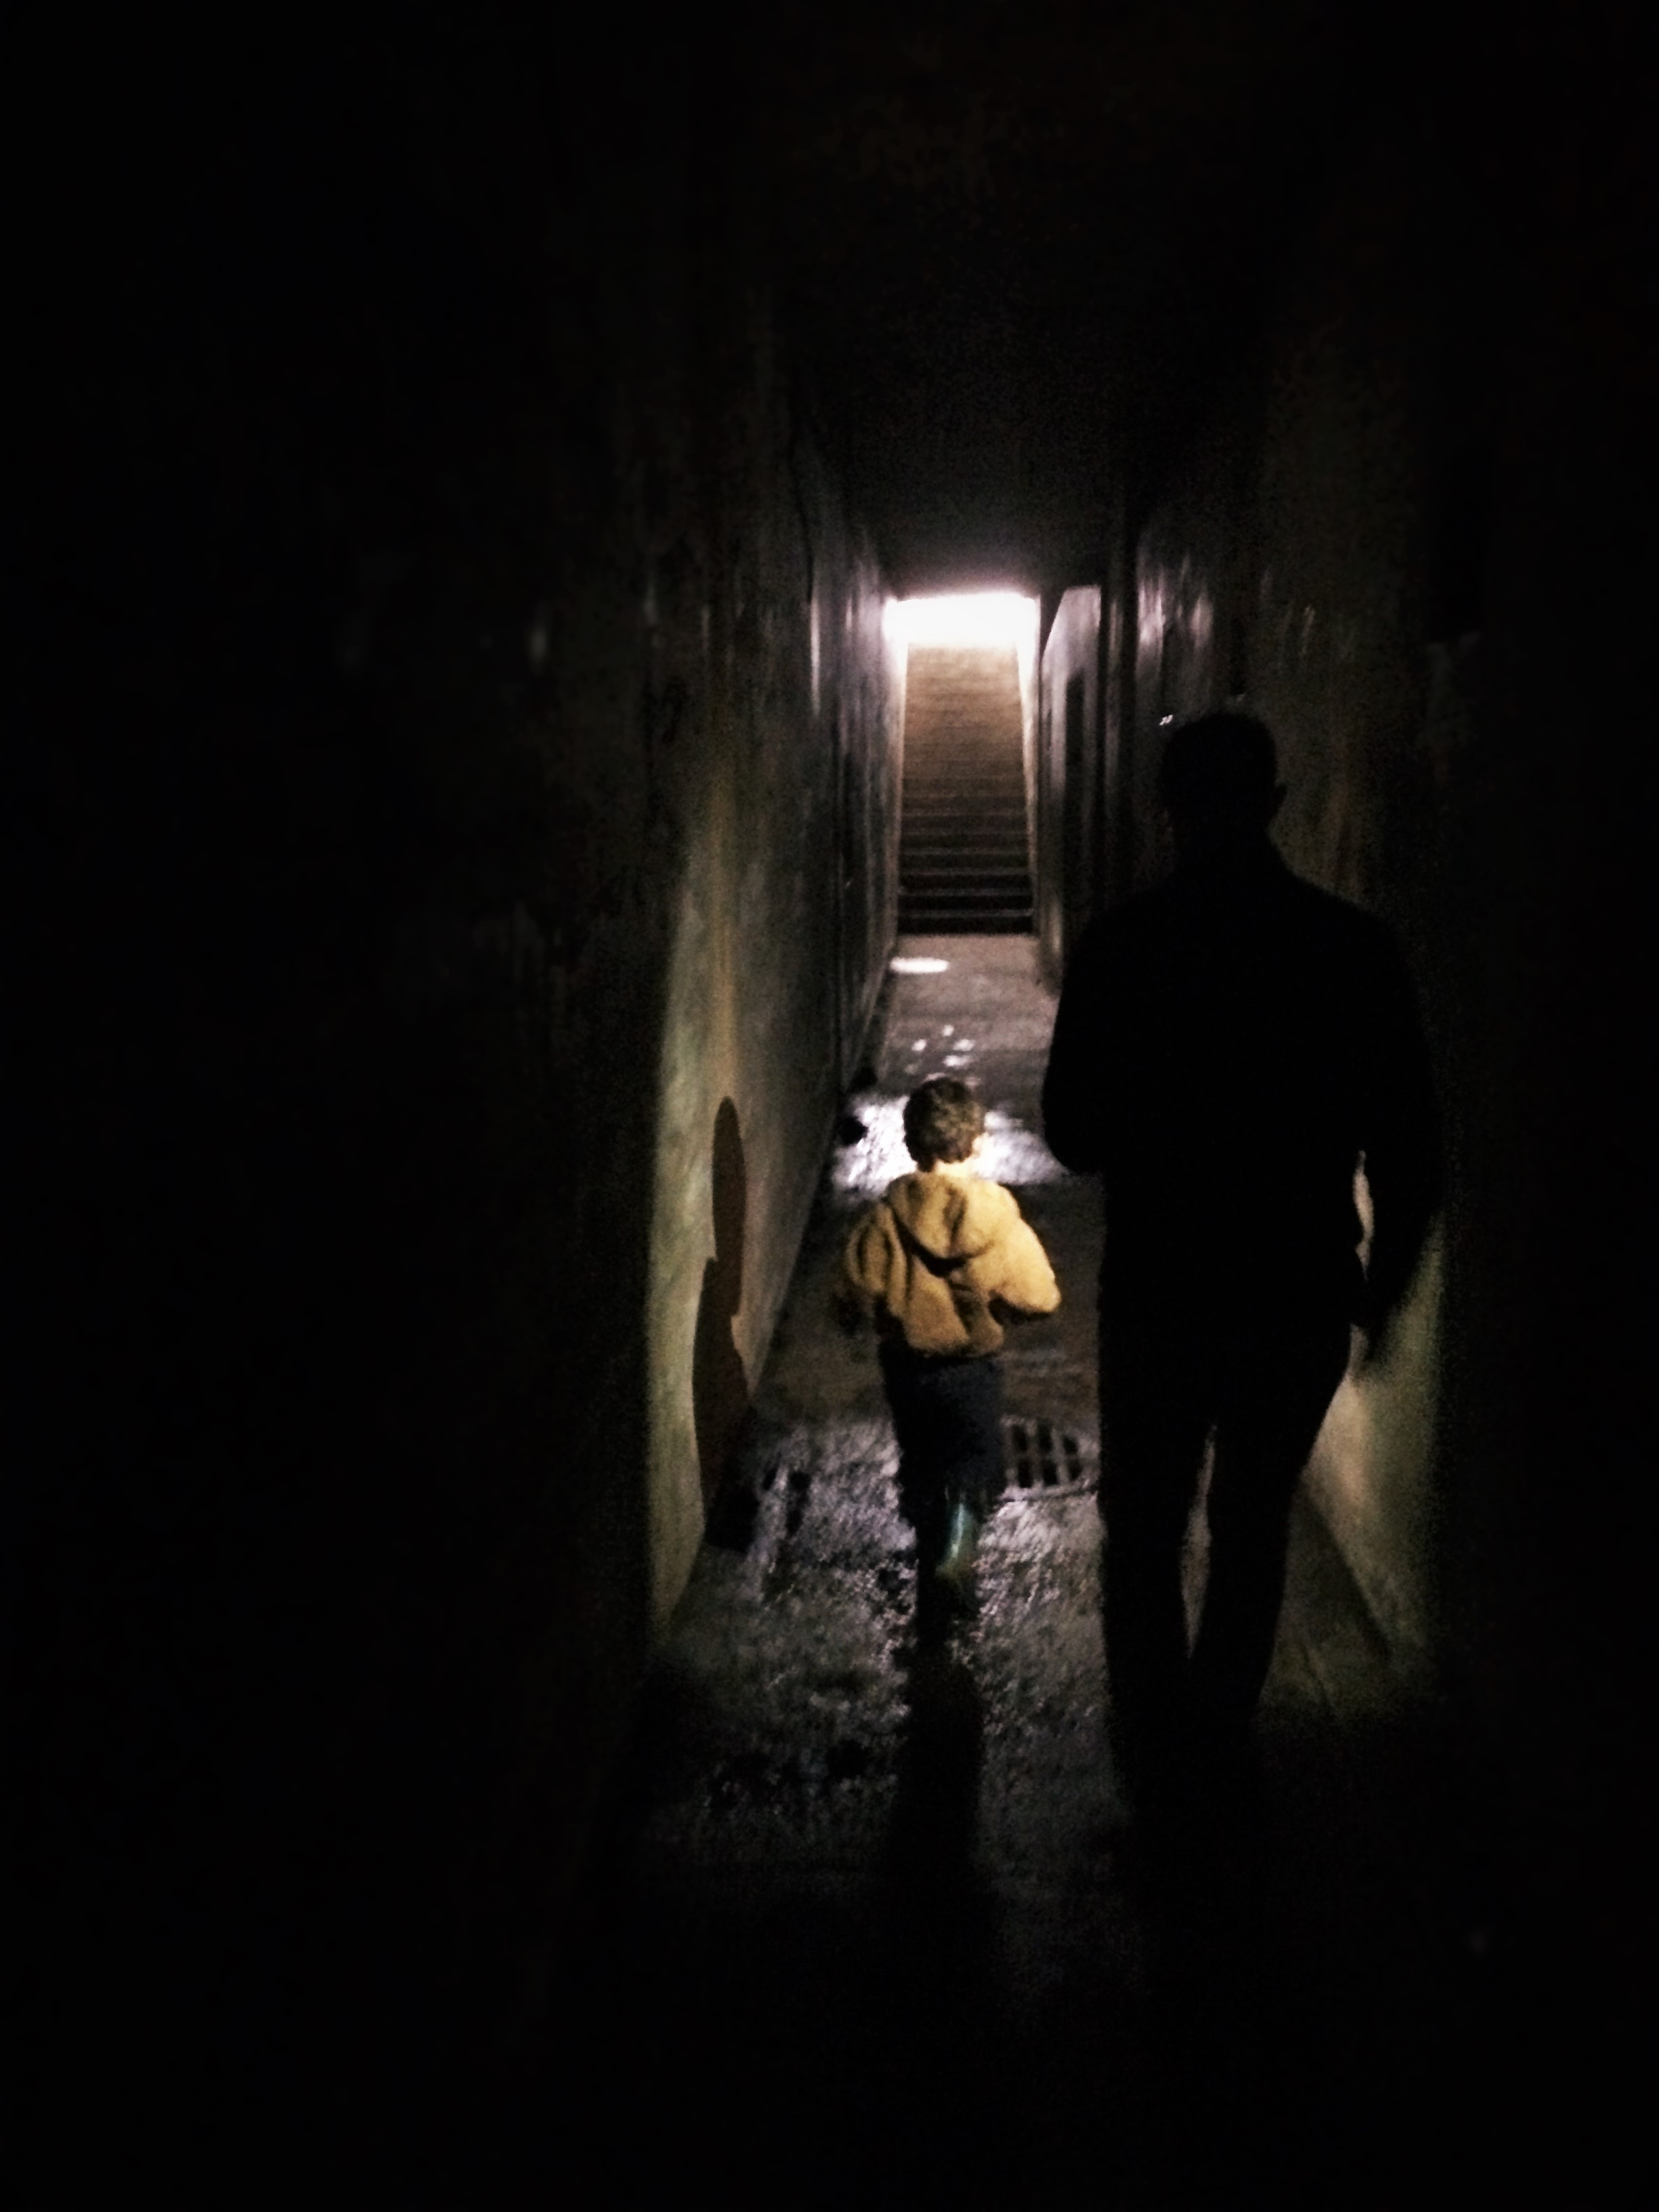 Chris Taylor and LittleMan in bunkers at Fort Worden Port Townsend 1